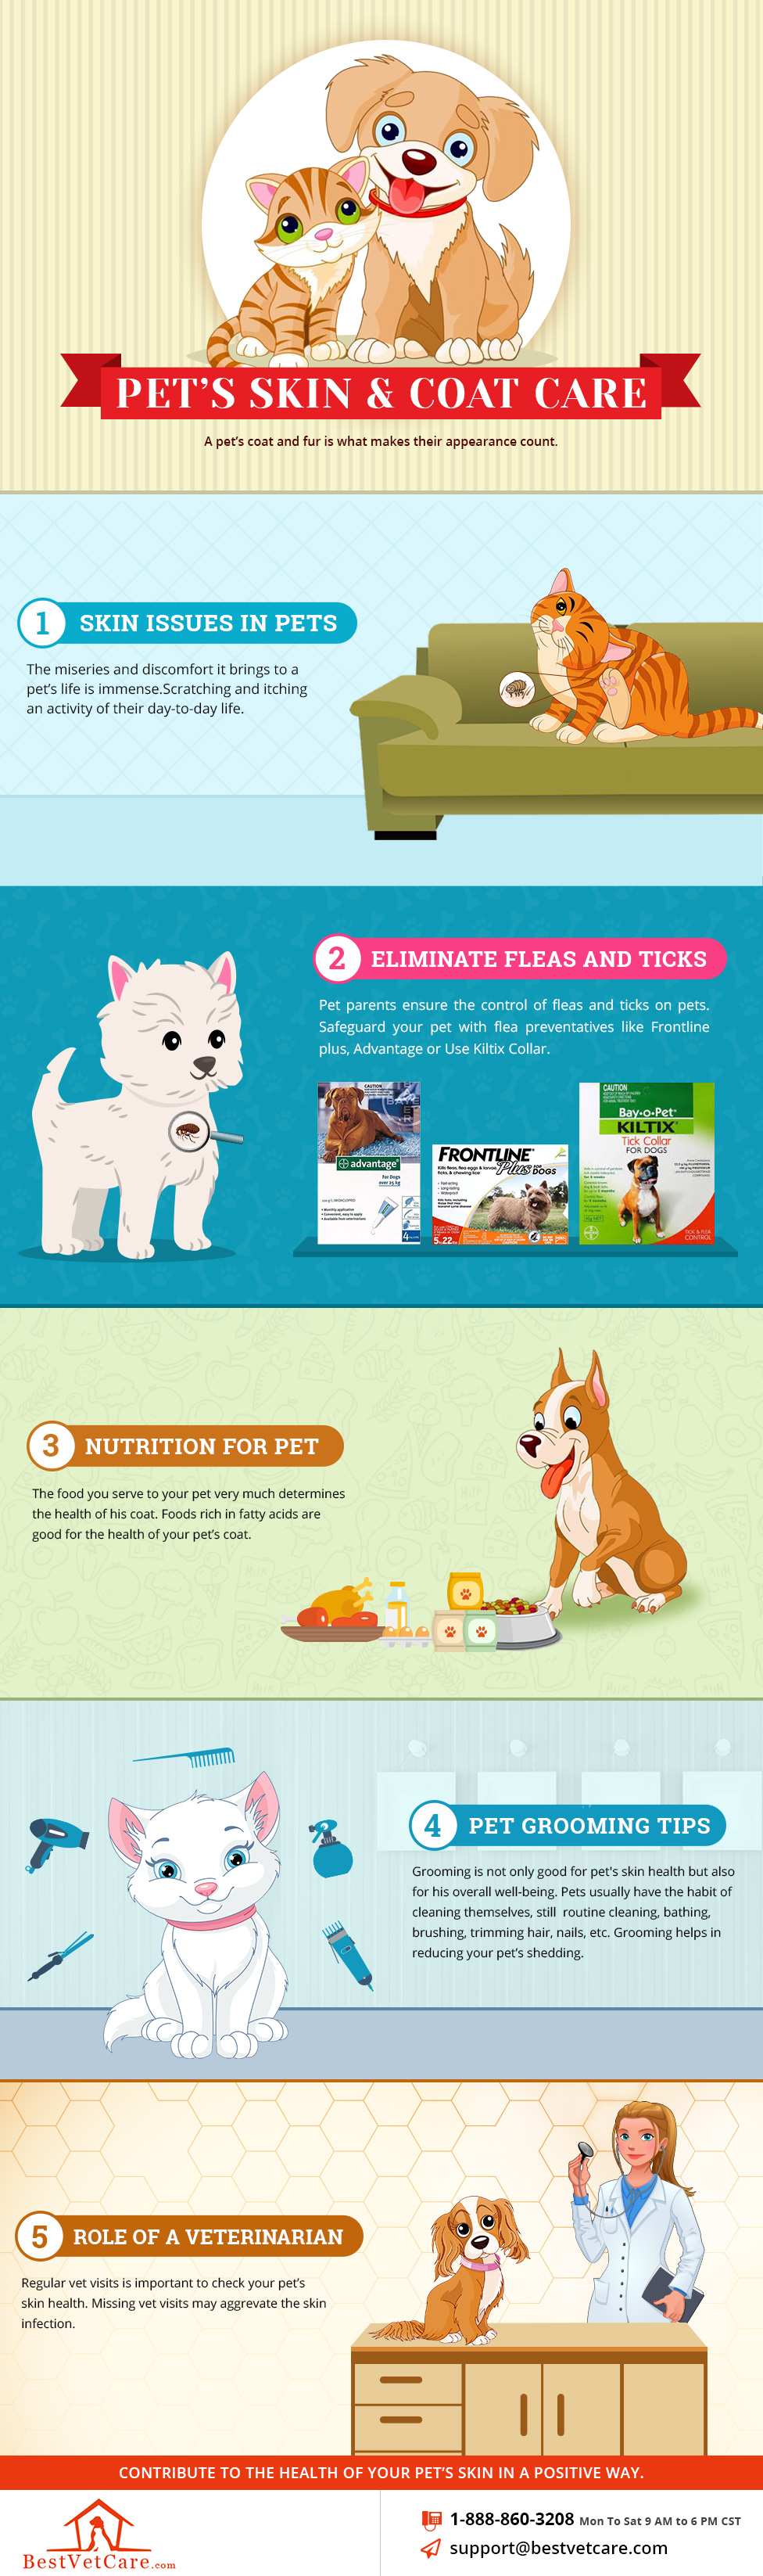 pets-skin-and-coat-care-01